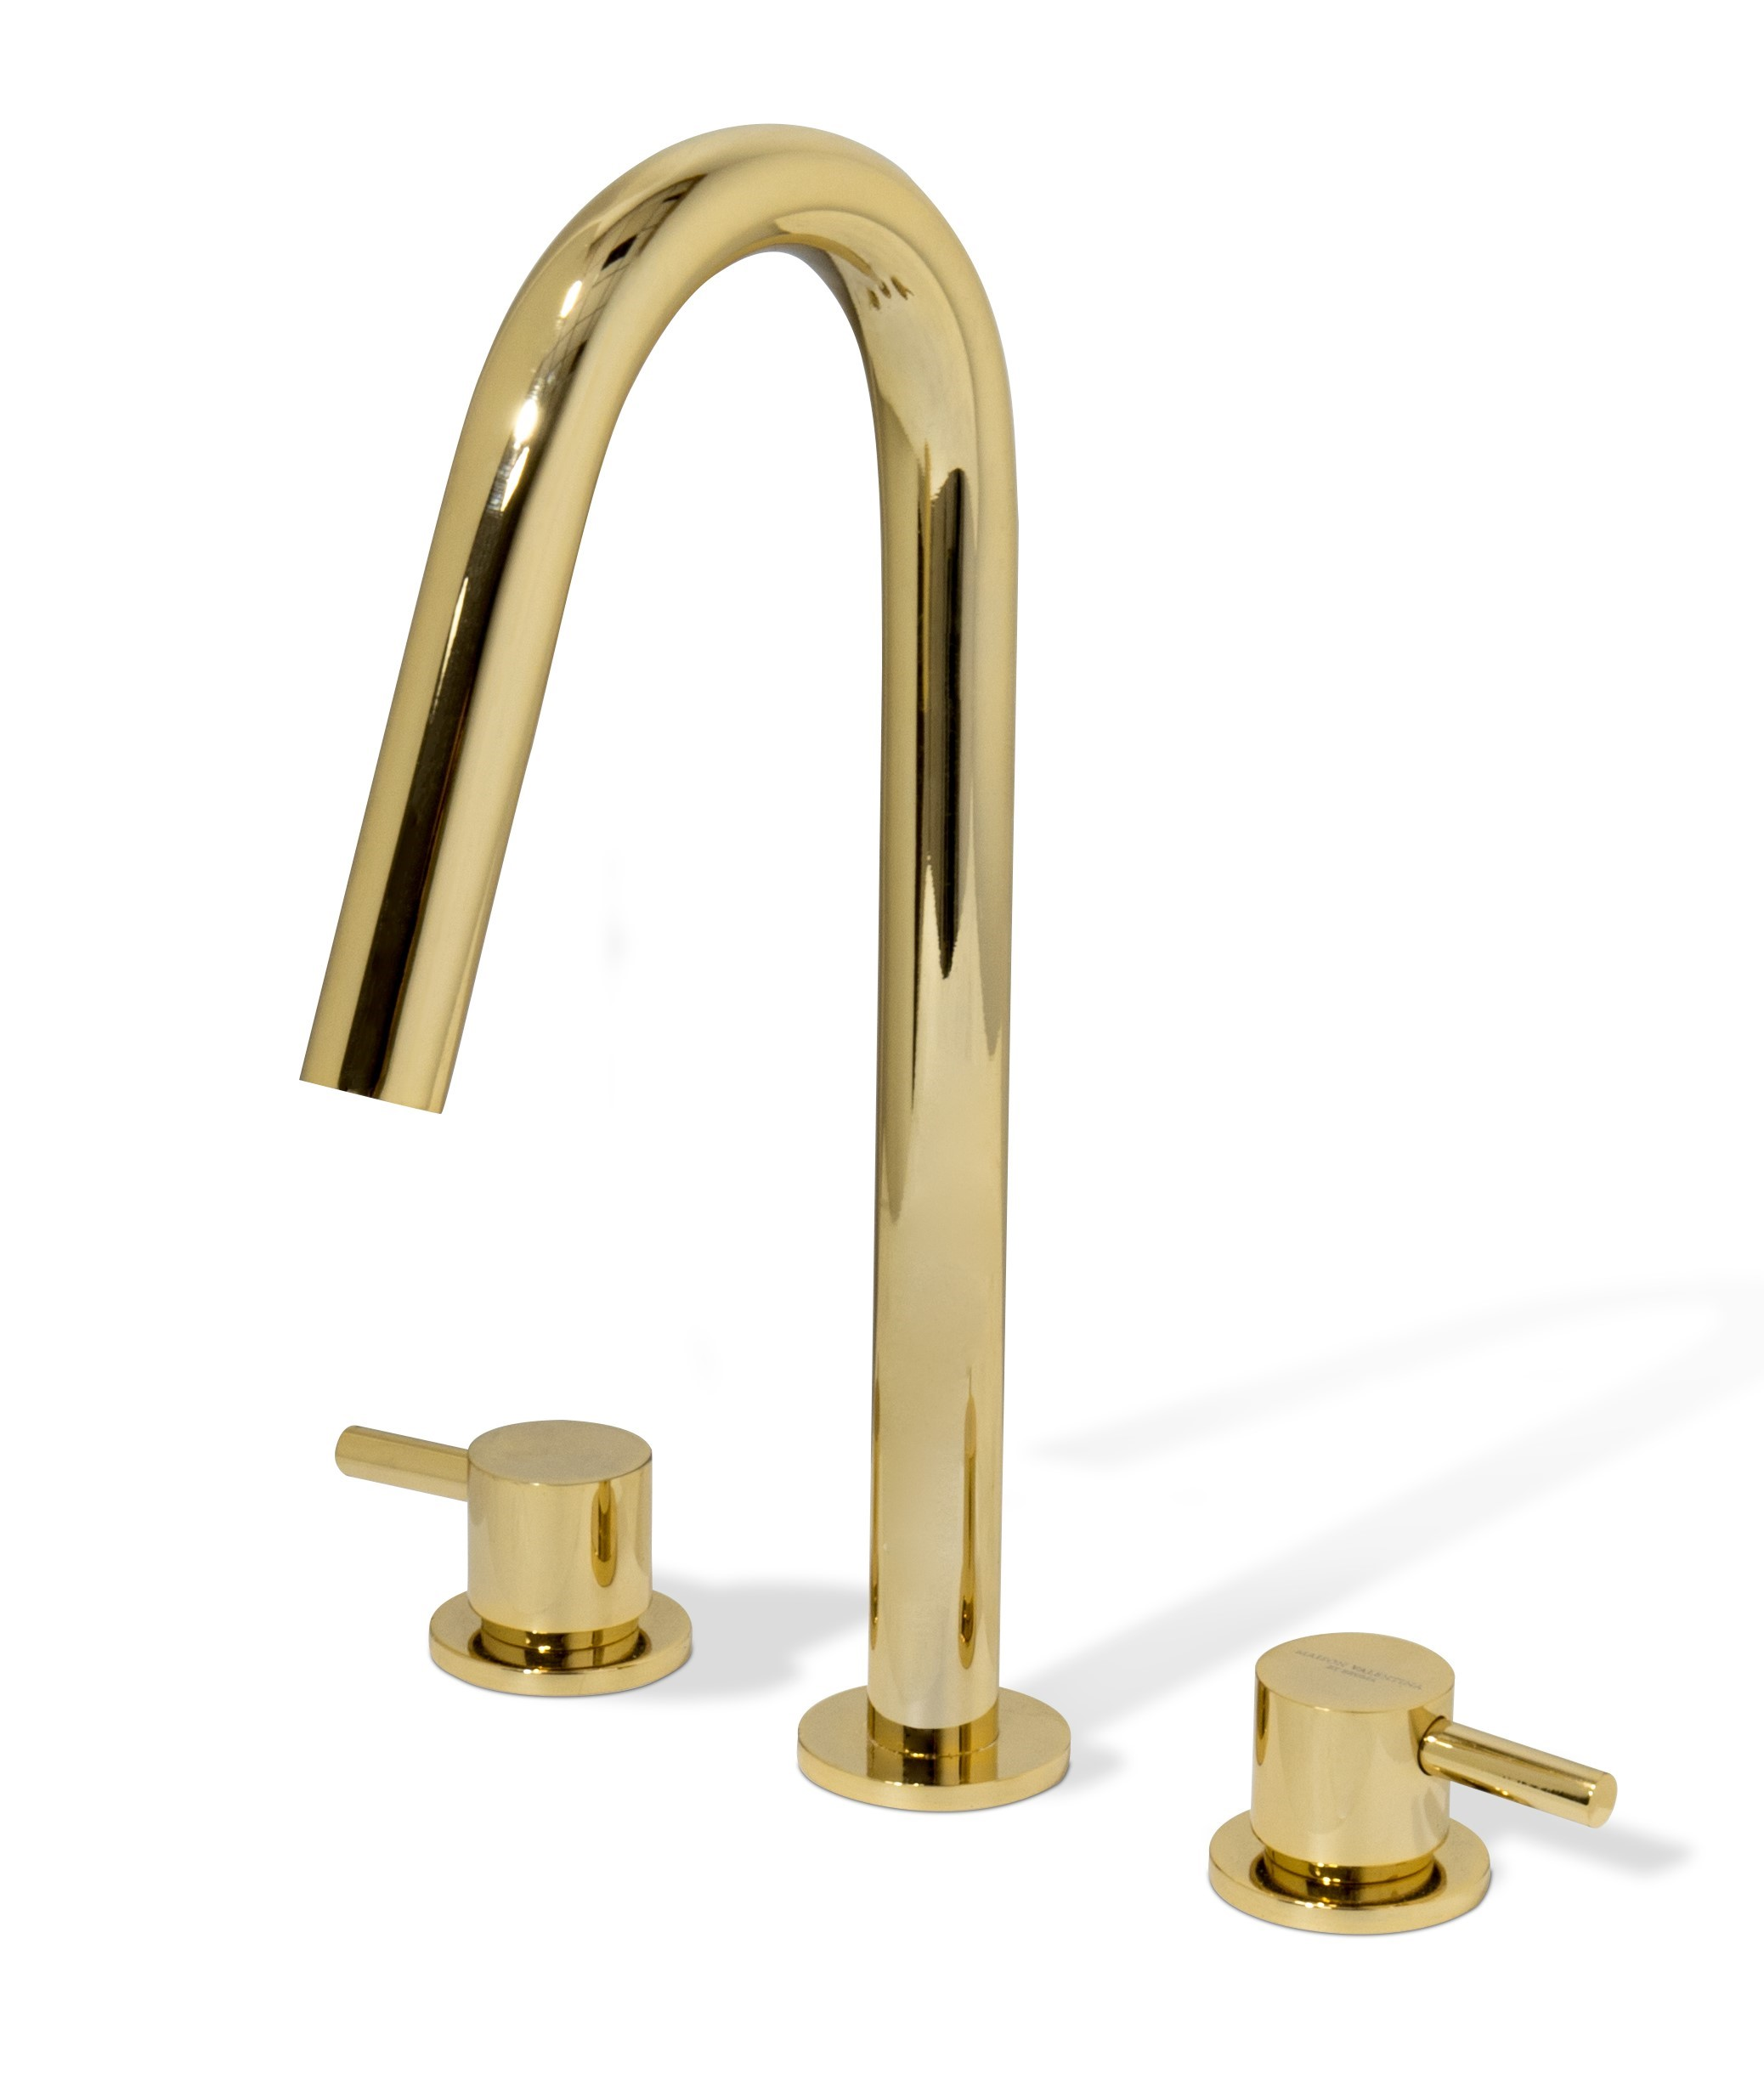 bathroom, golden bathroom, gold,maison valentina, bathub, mirror, rug, tap, bathroom decoration, bathroom decor bathroom 5 Ideas to Add a Touch of Gold to Your Bathroom ouch of gold to your bathroom 5 ideas to add a origin three hole mixer tap 1 HR 3